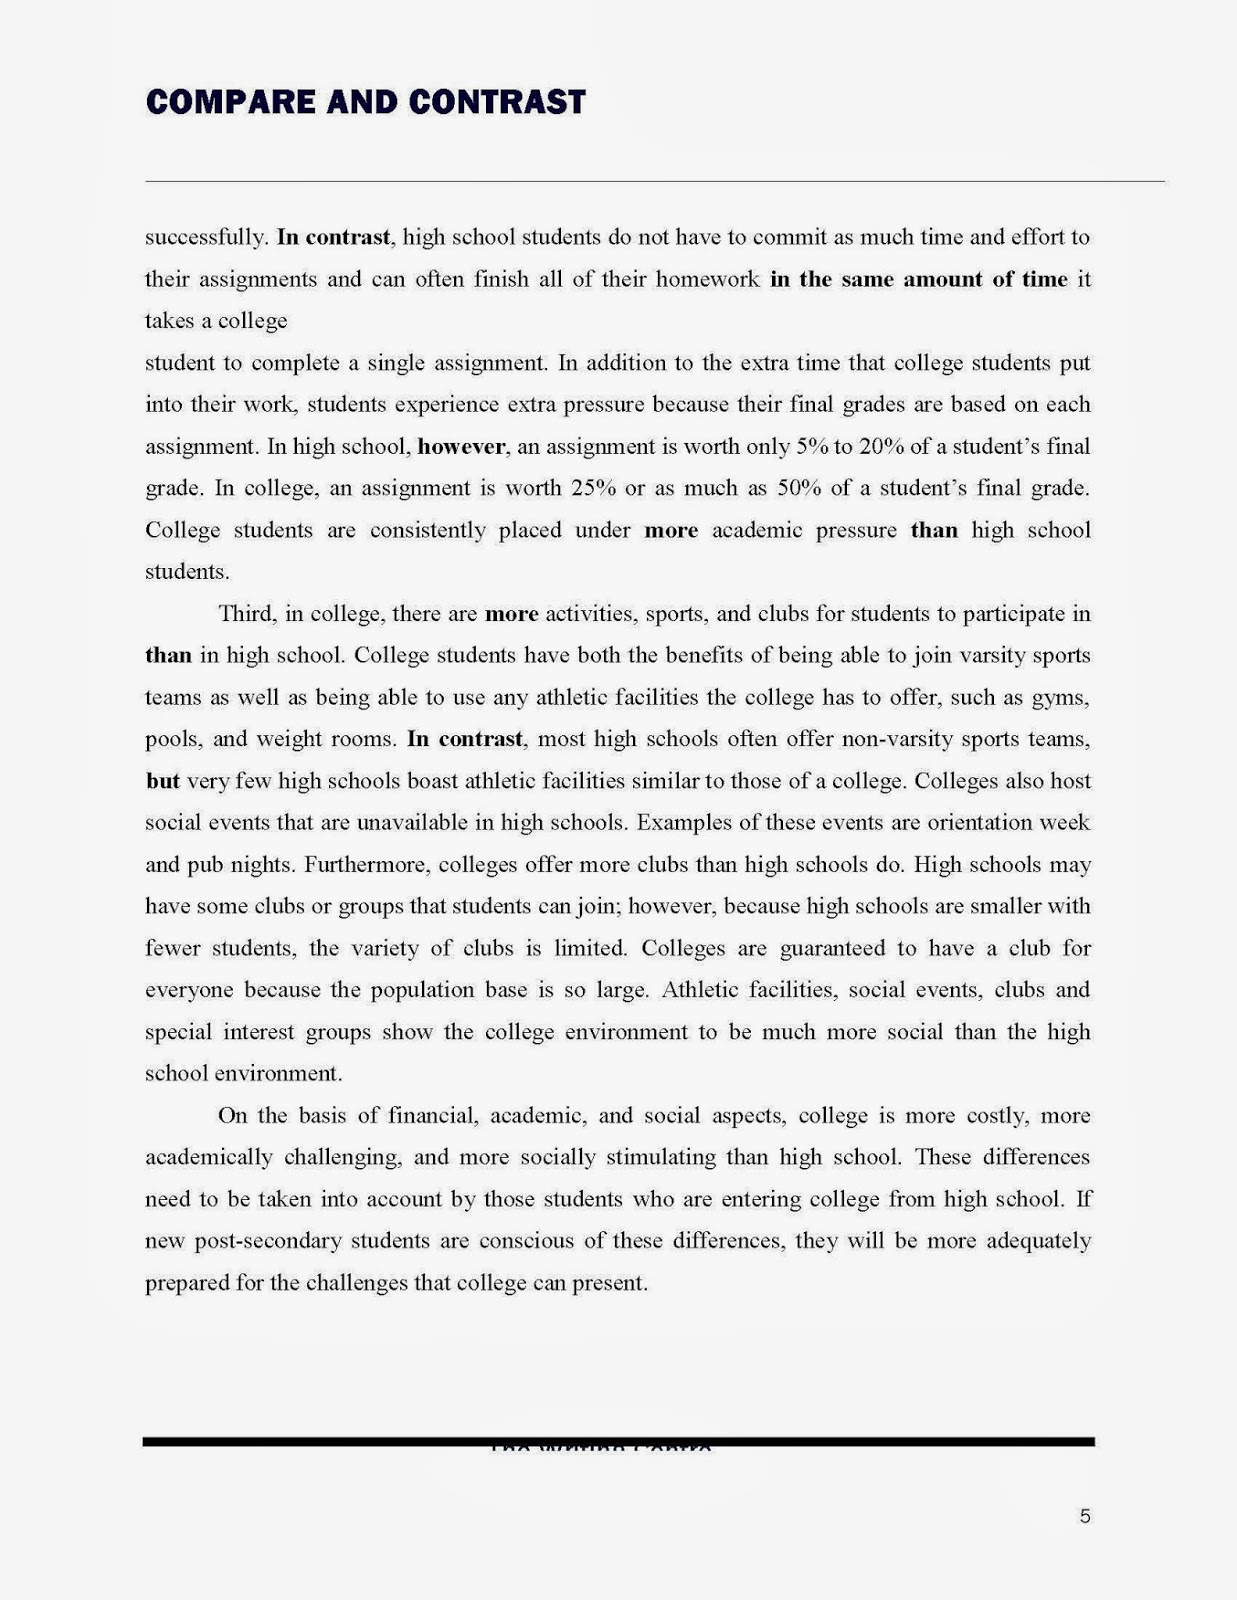 wwi essay a bluestocking guide world war i essay on the giver by  essay on the giver by lois lowry essay on the book the giver by compare and introspective